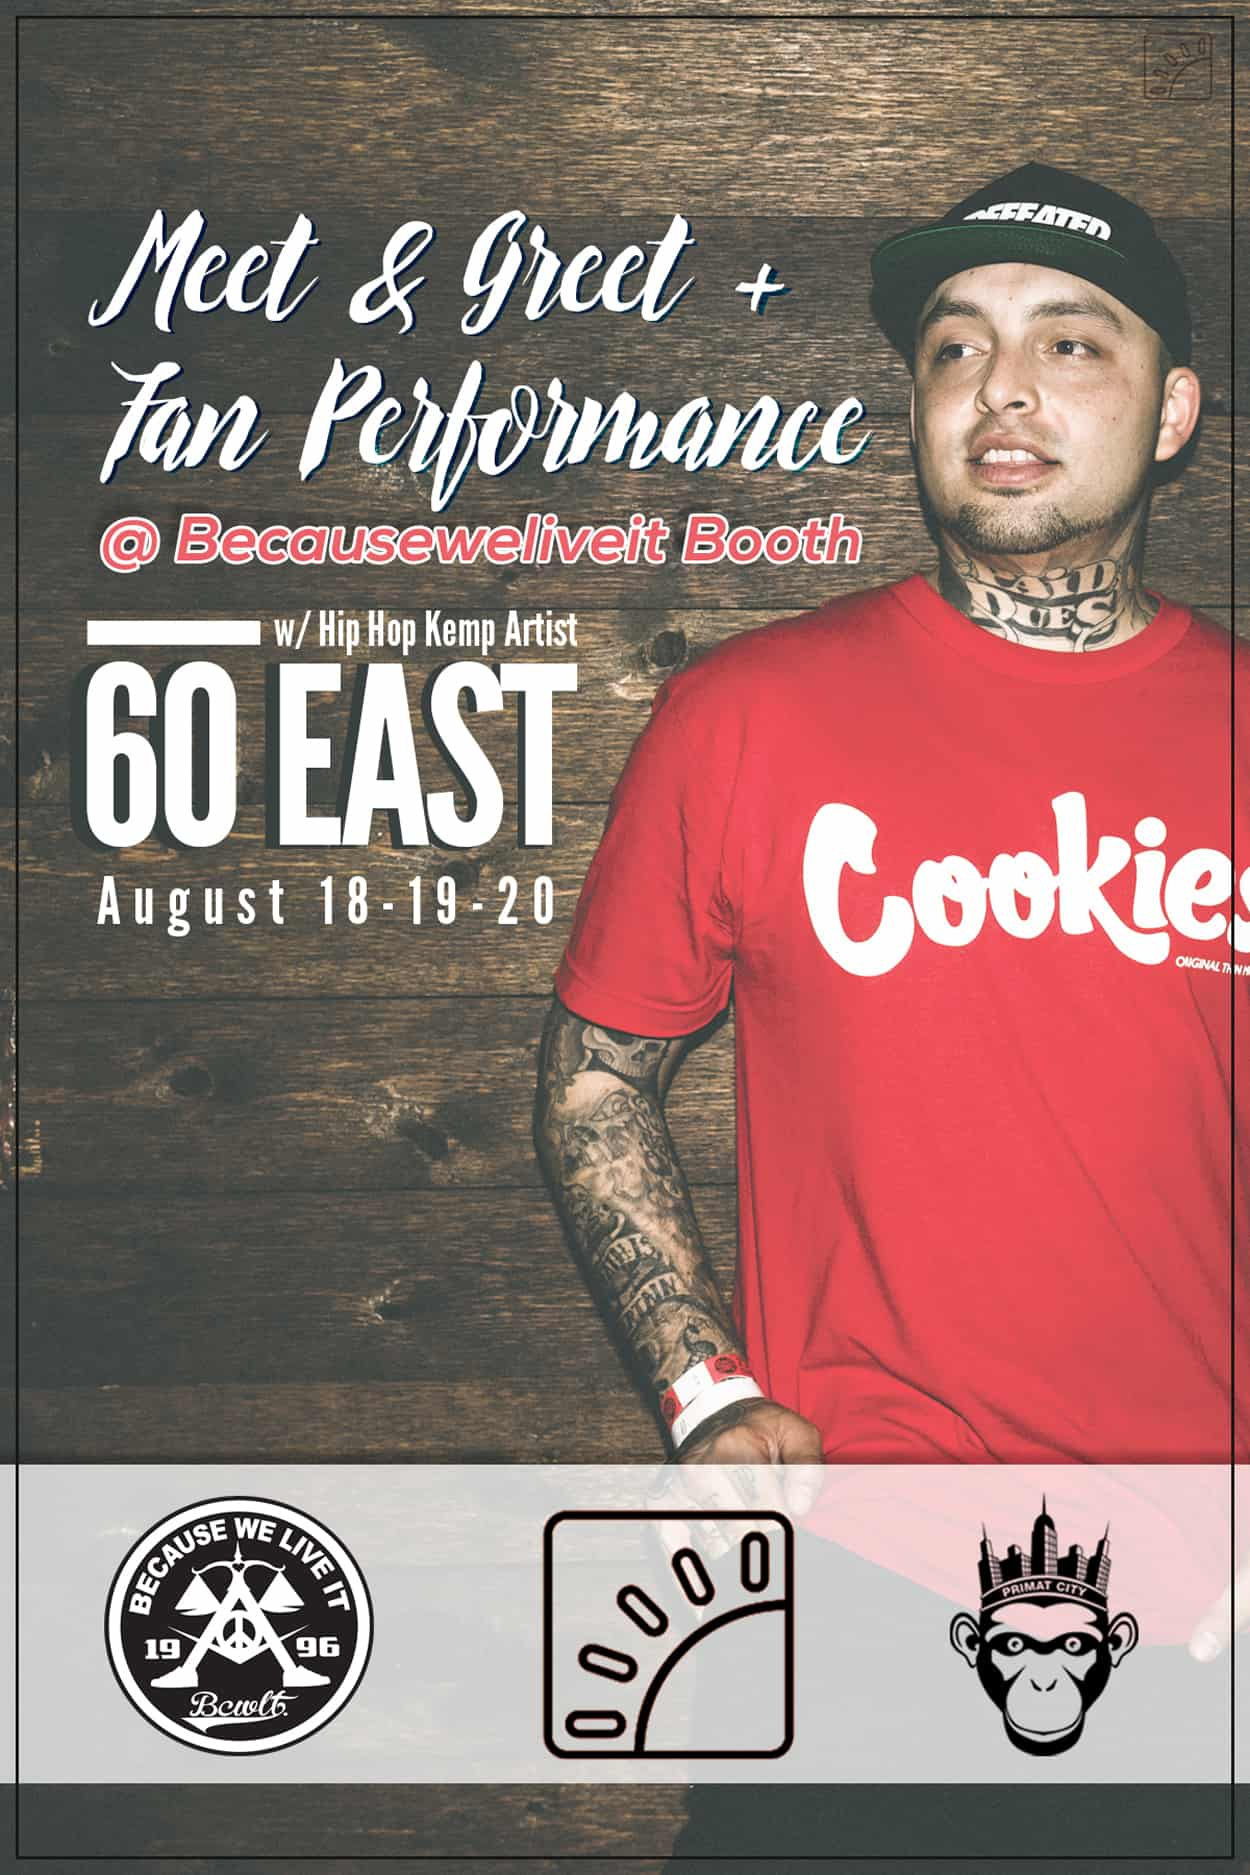 60east - hip hop kemp festival - flyer design